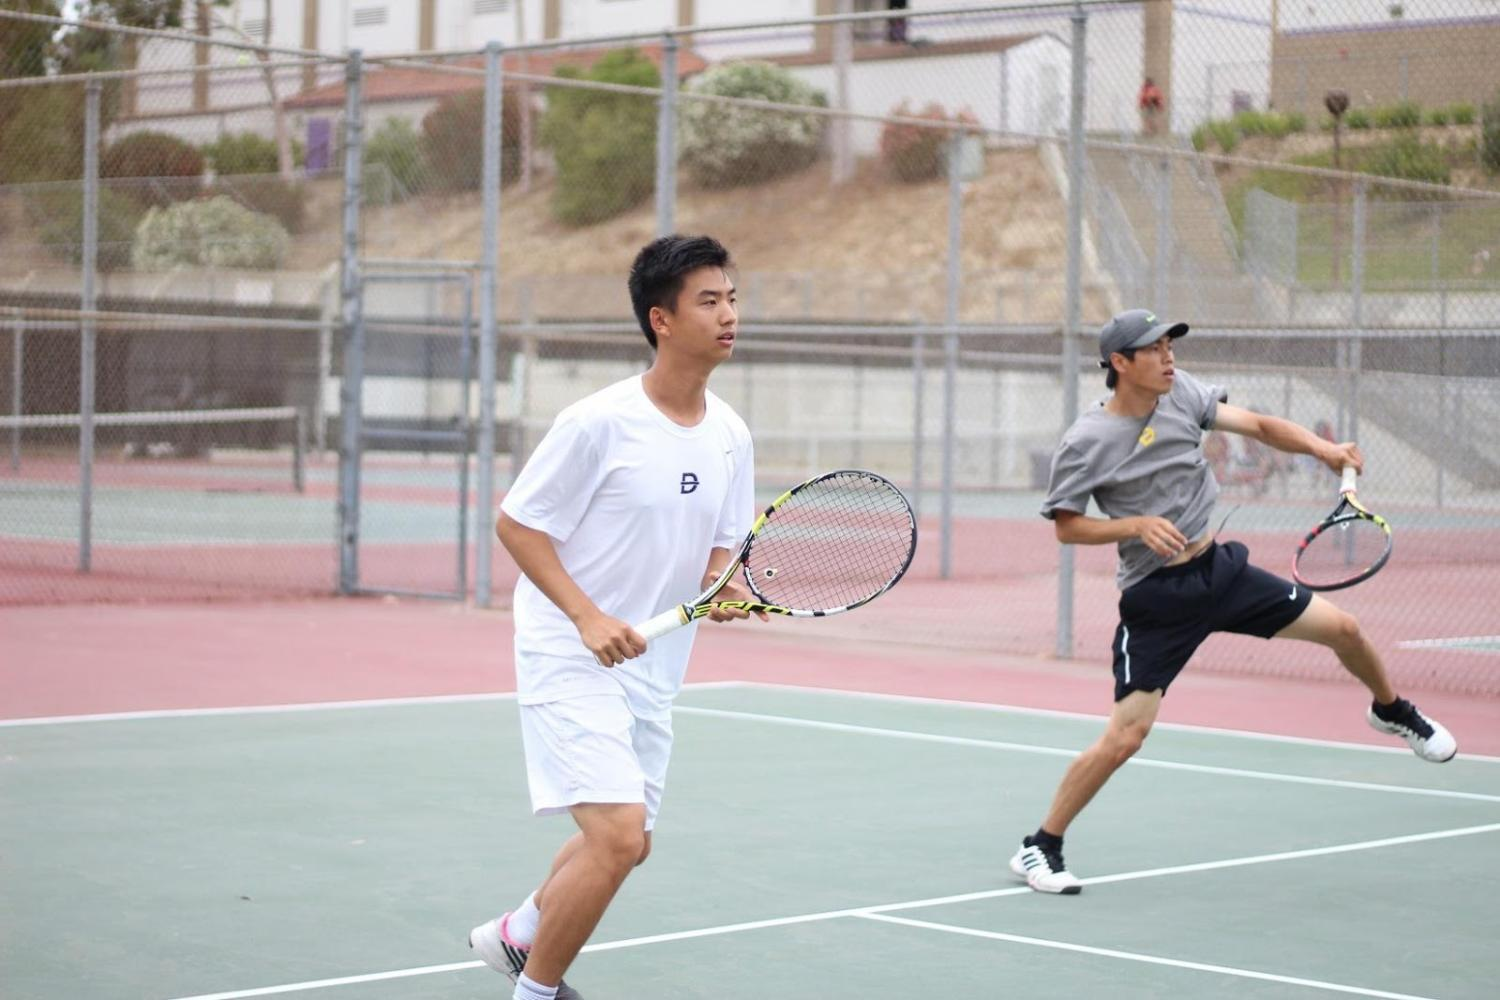 Freshman+Akilan+Arunachalam+and+doubles+team+of+sophomore+Victor+Chai+and+junior+Michael+Tran+%28from+left%29+on+the+court.